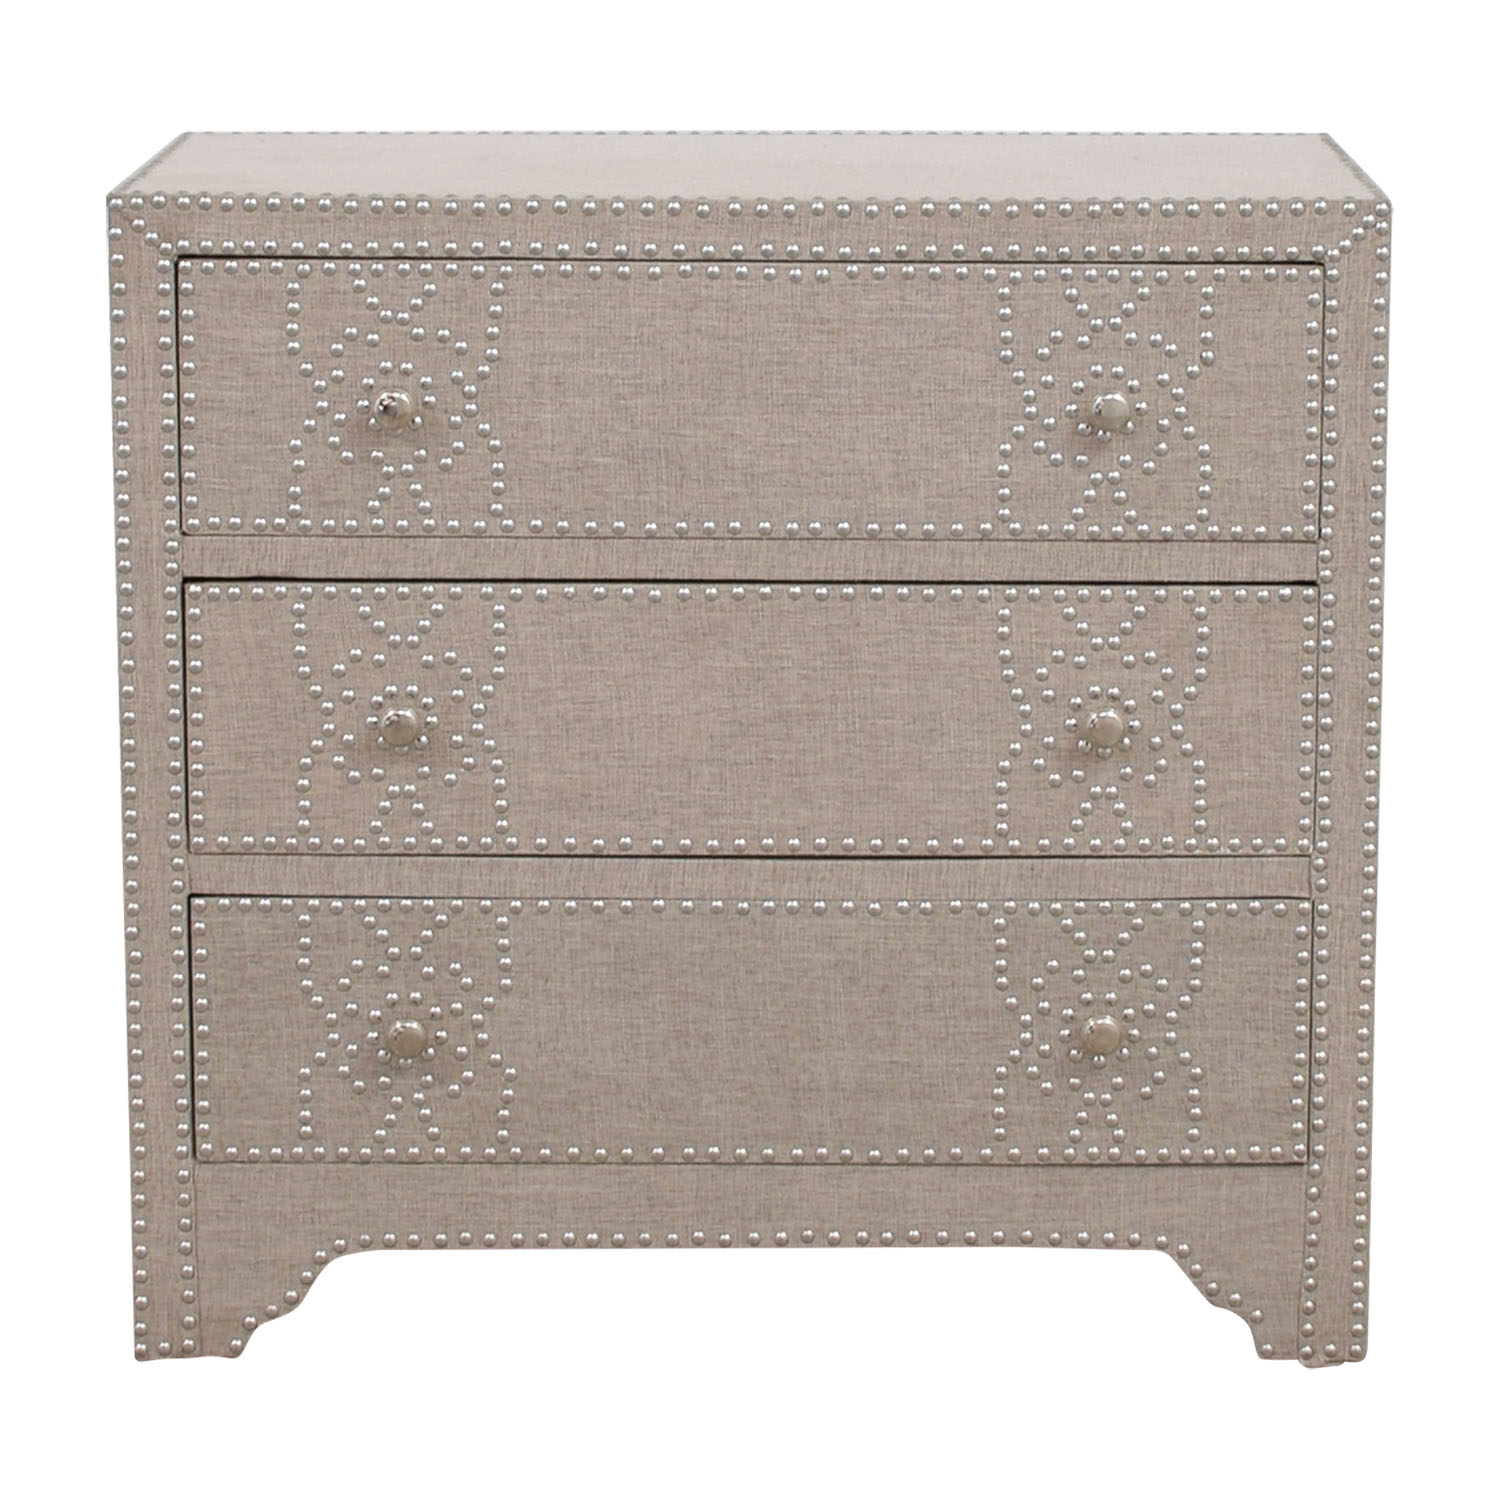 Pier 1 Imports Pier 1 Import Grey Fabric Lexford Chest with Nailheads grey